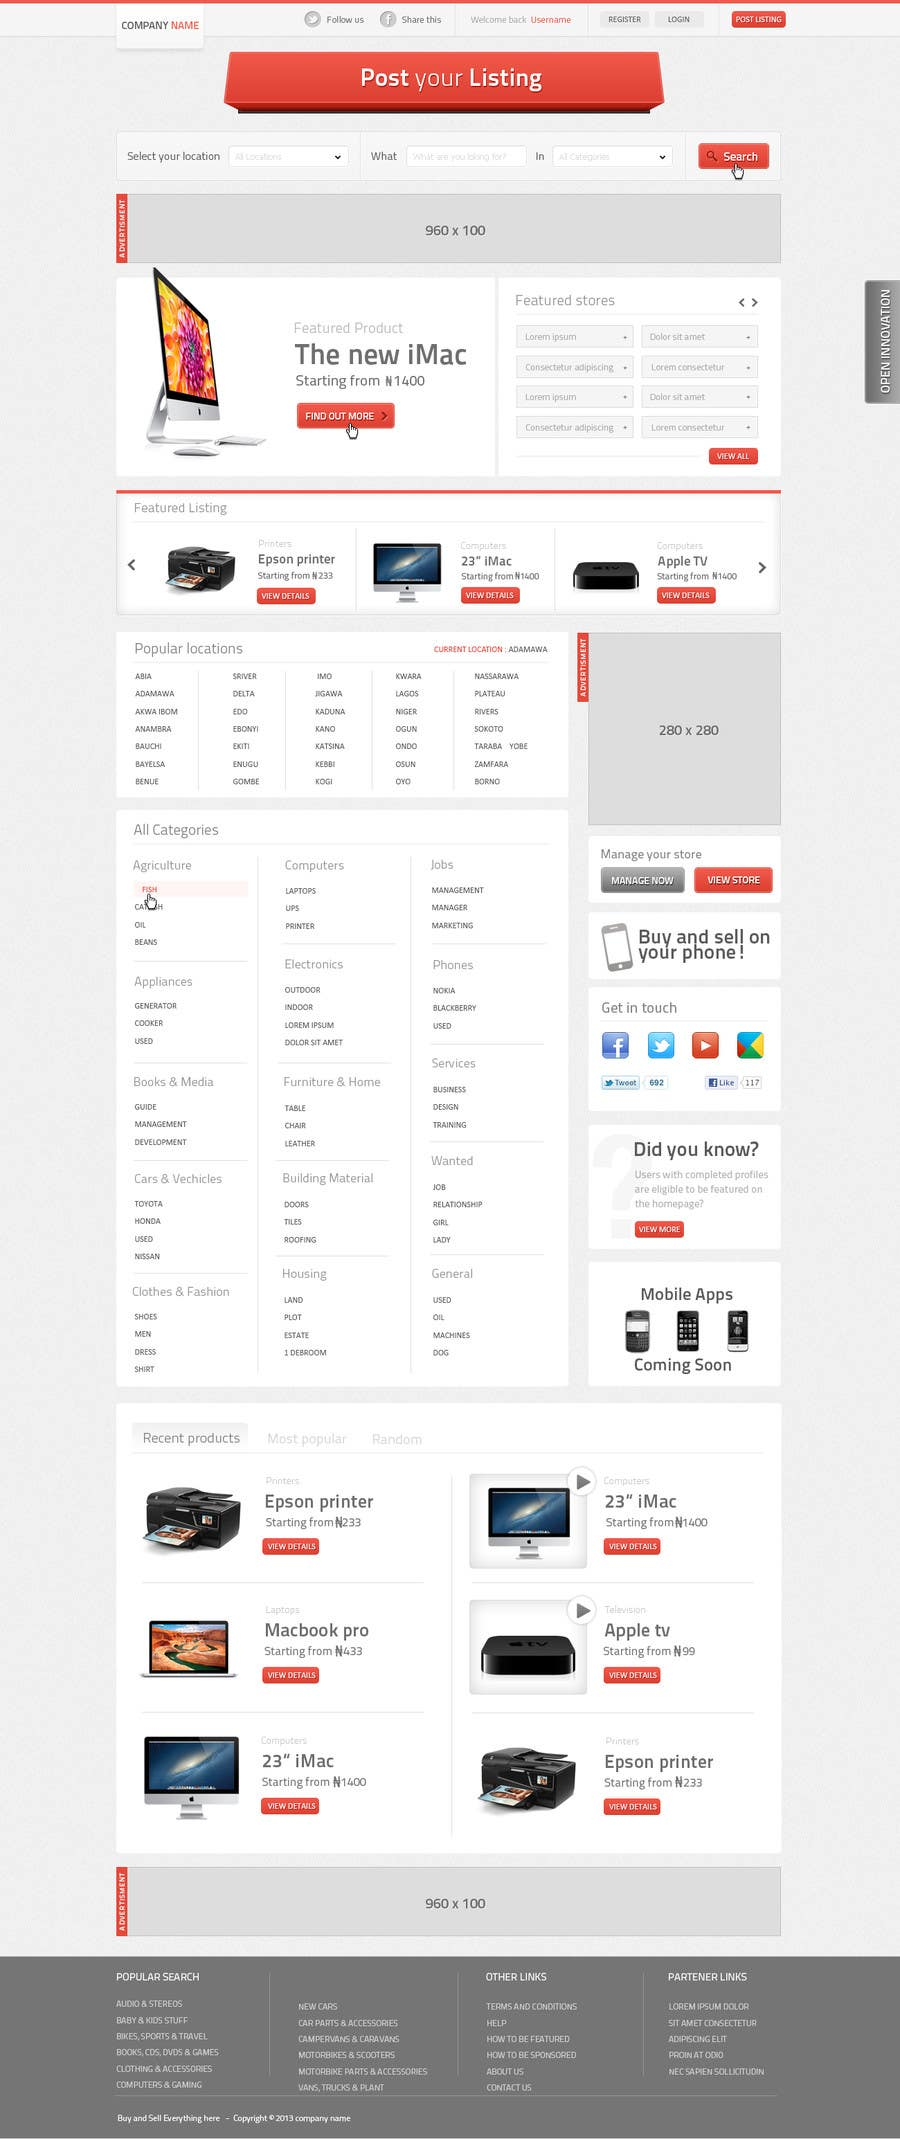 Bài tham dự cuộc thi #                                        18                                      cho                                         looking for good psd designer for classified website